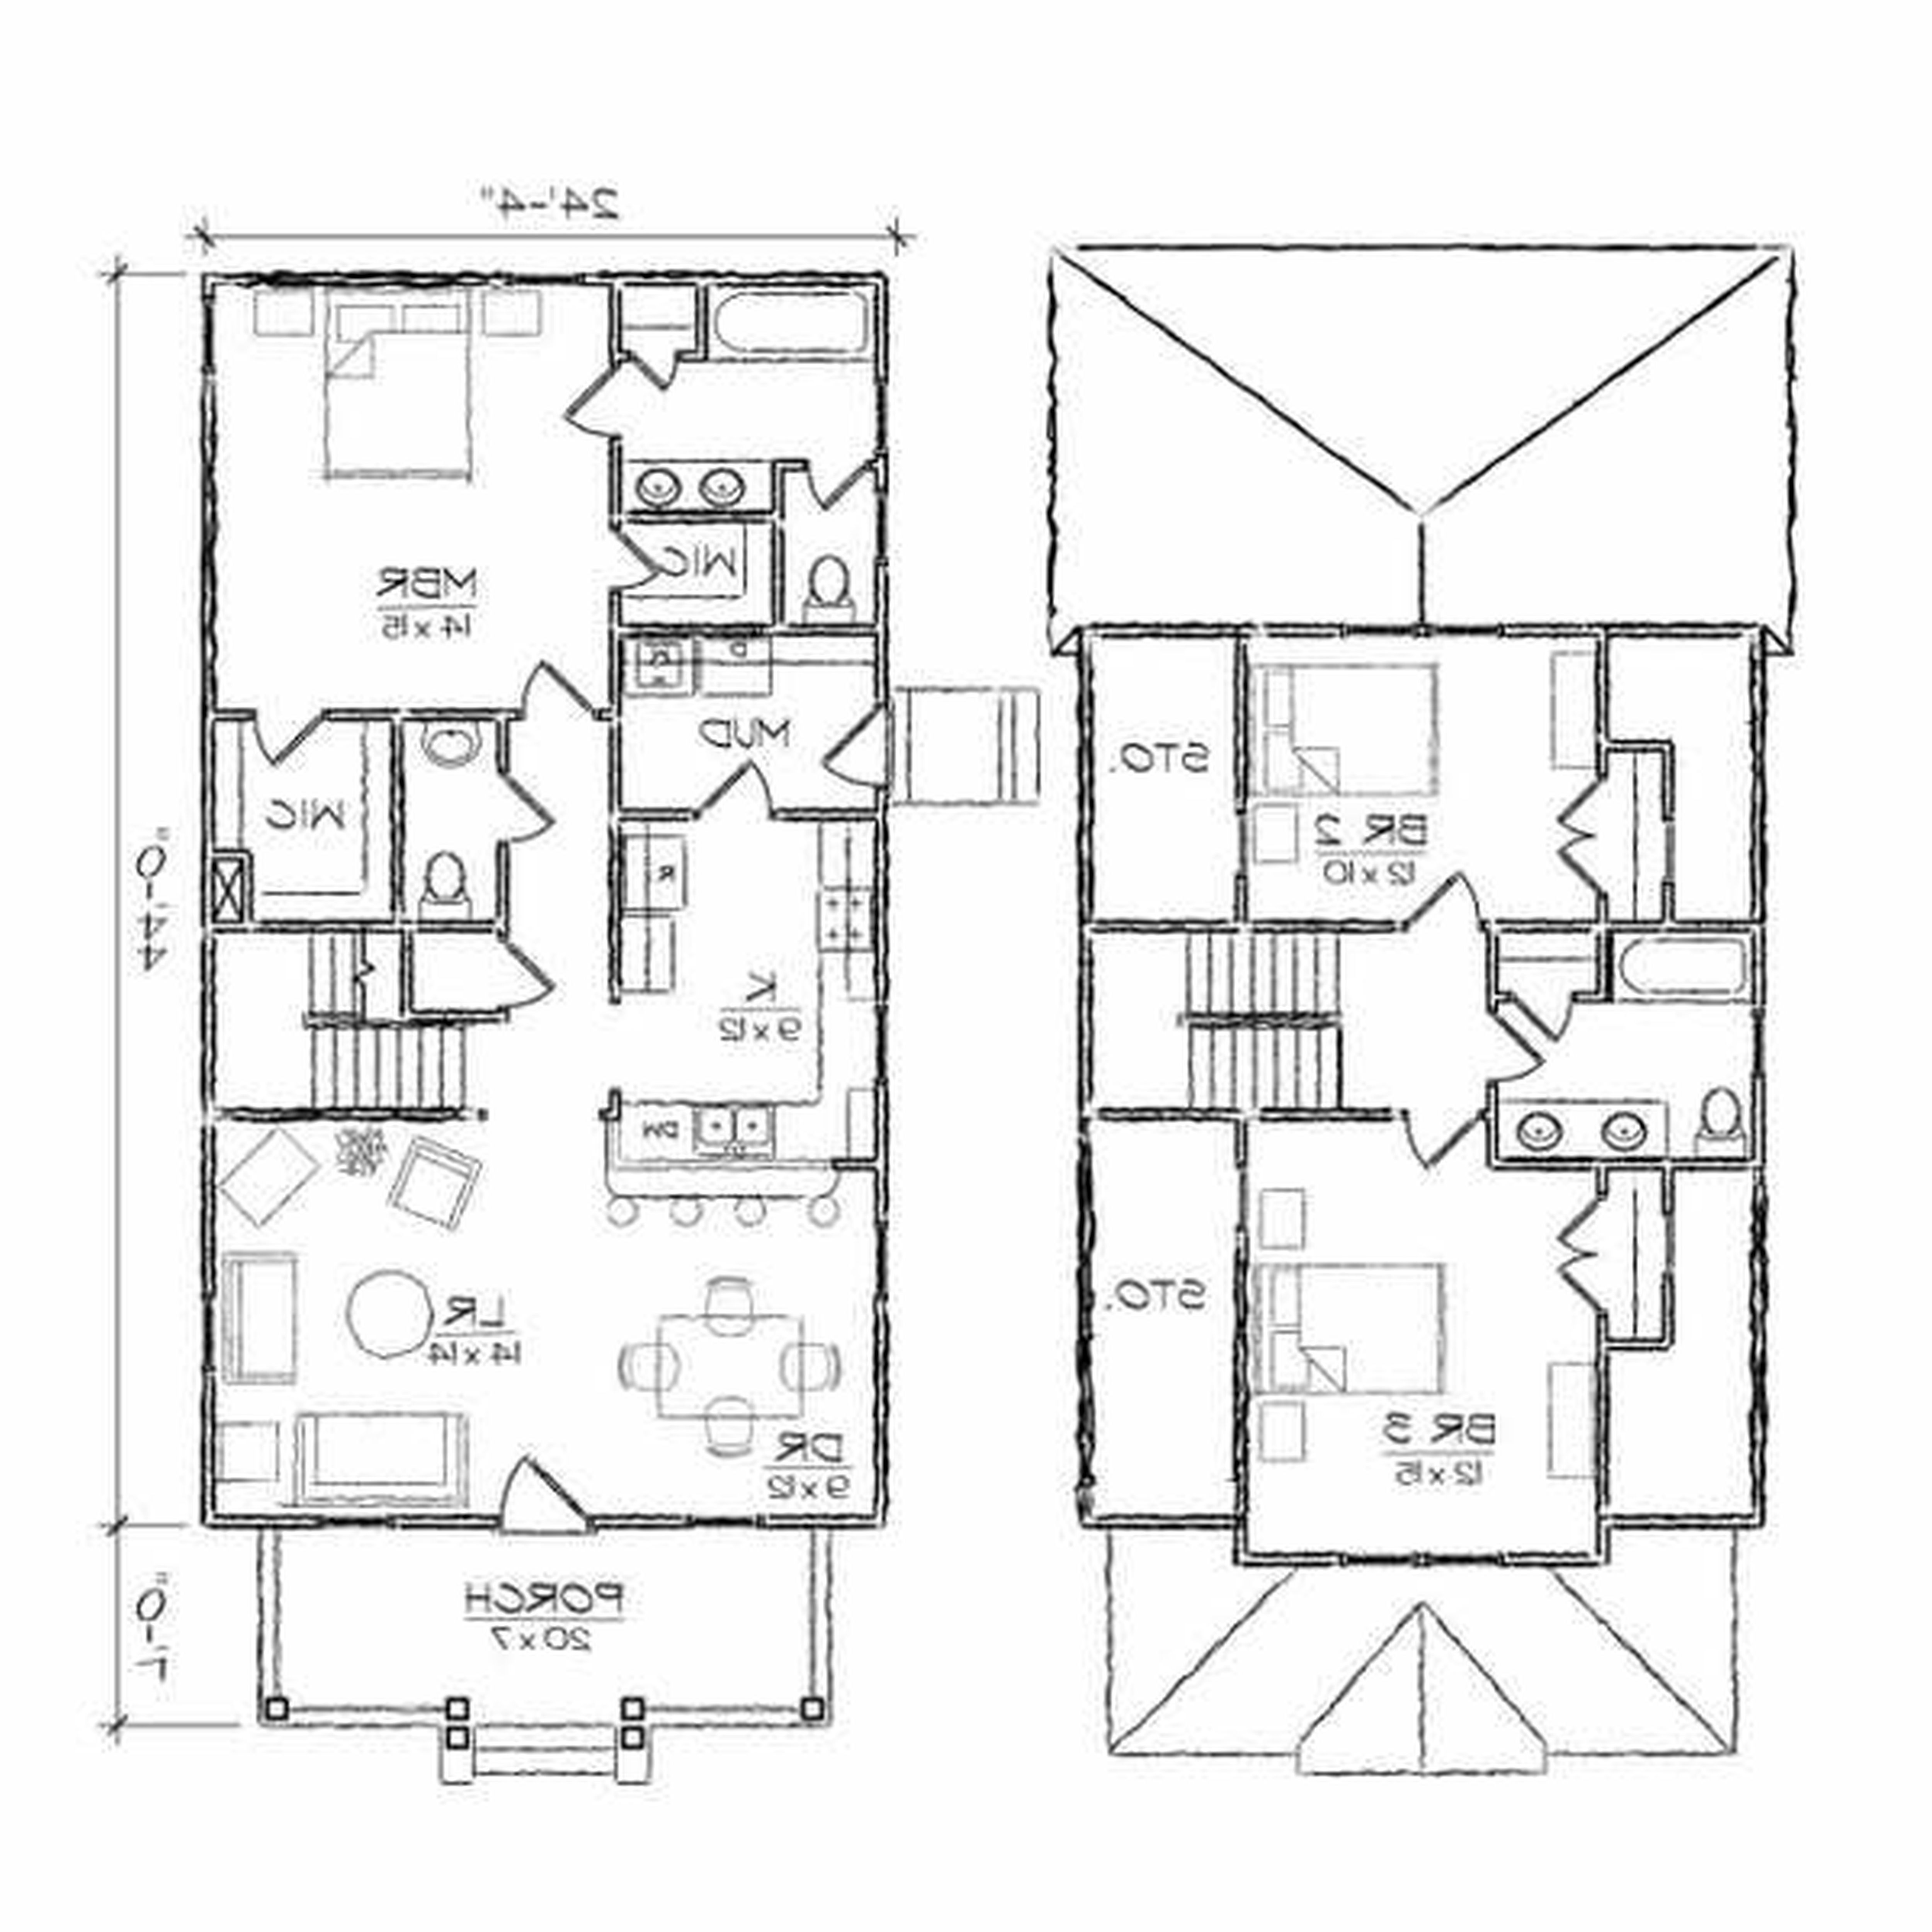 Building A House Drawing at GetDrawings.com | Free for personal use on school house building, cheap house building, game house building, virtual house building, university house building, easy house building, red house building, paper house building, shop house building, fun house building, uk house building,